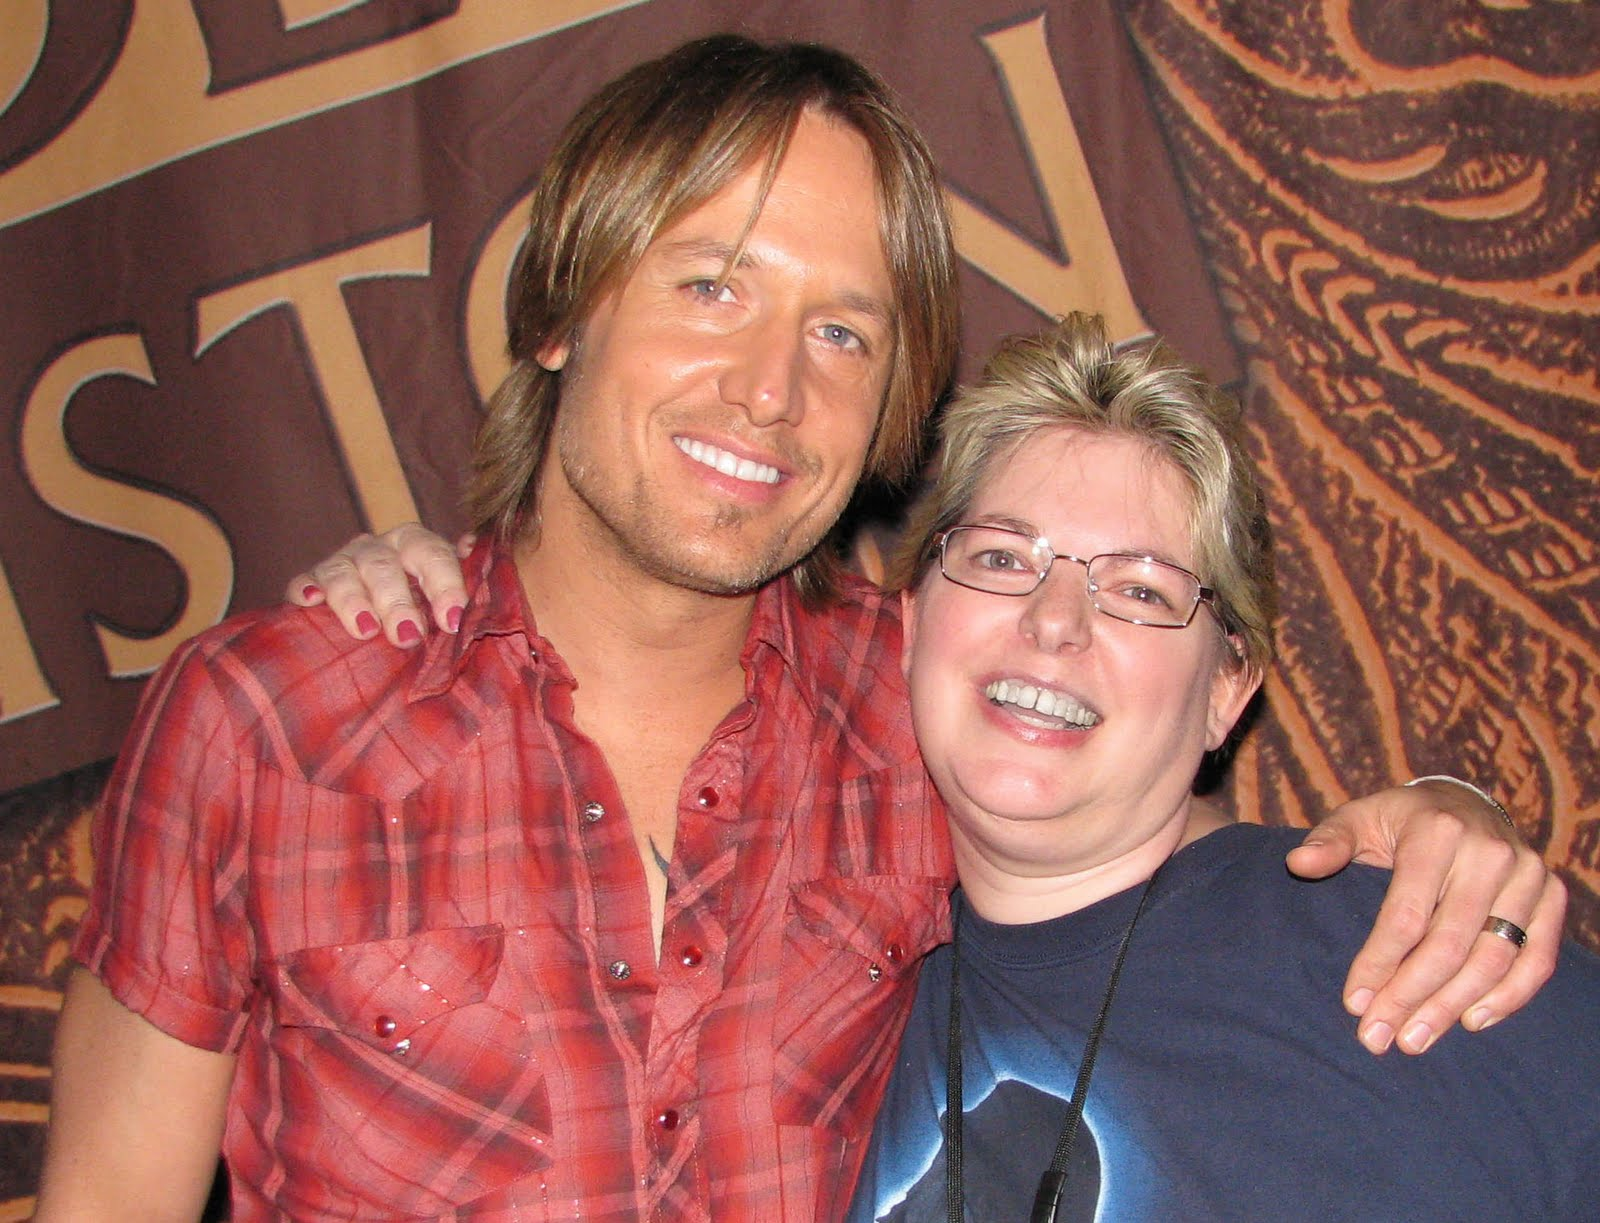 My keith urban journey and more meet greet houston tx i just got a email saying i won a meet greet in houston tx for the houston rodeo live stock on oct 15th m4hsunfo